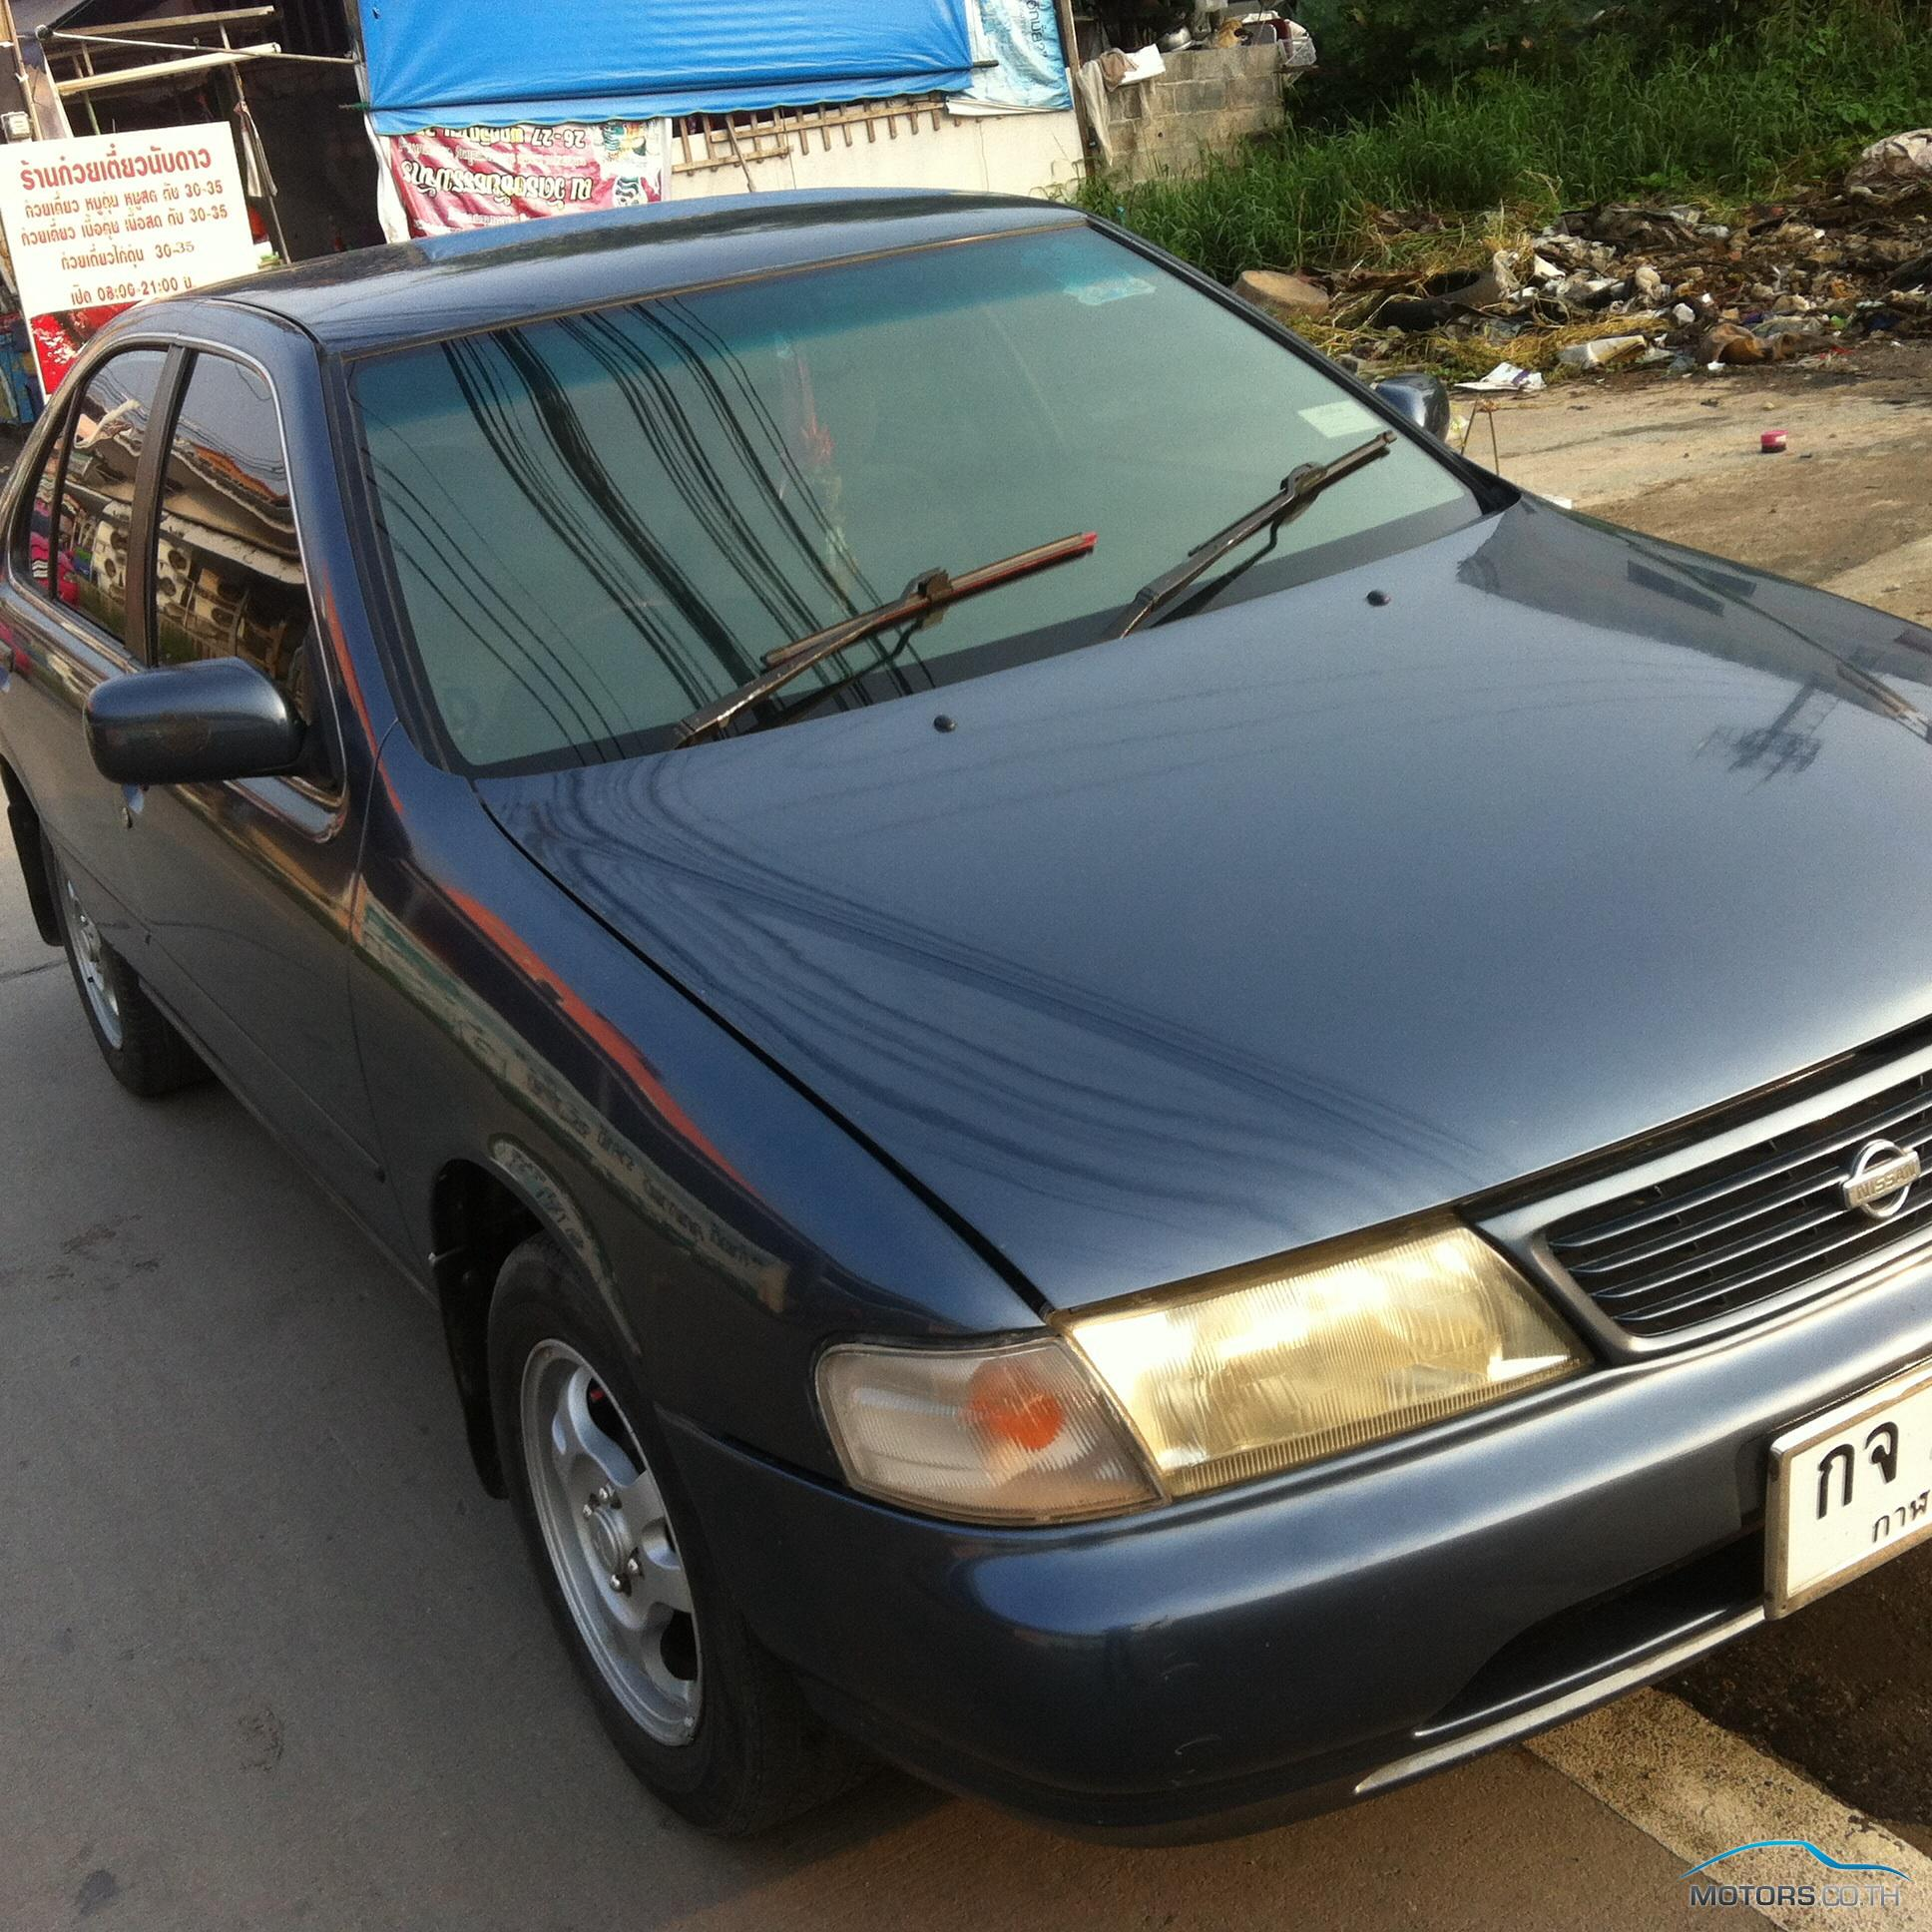 Secondhand NISSAN SUNNY (1995)